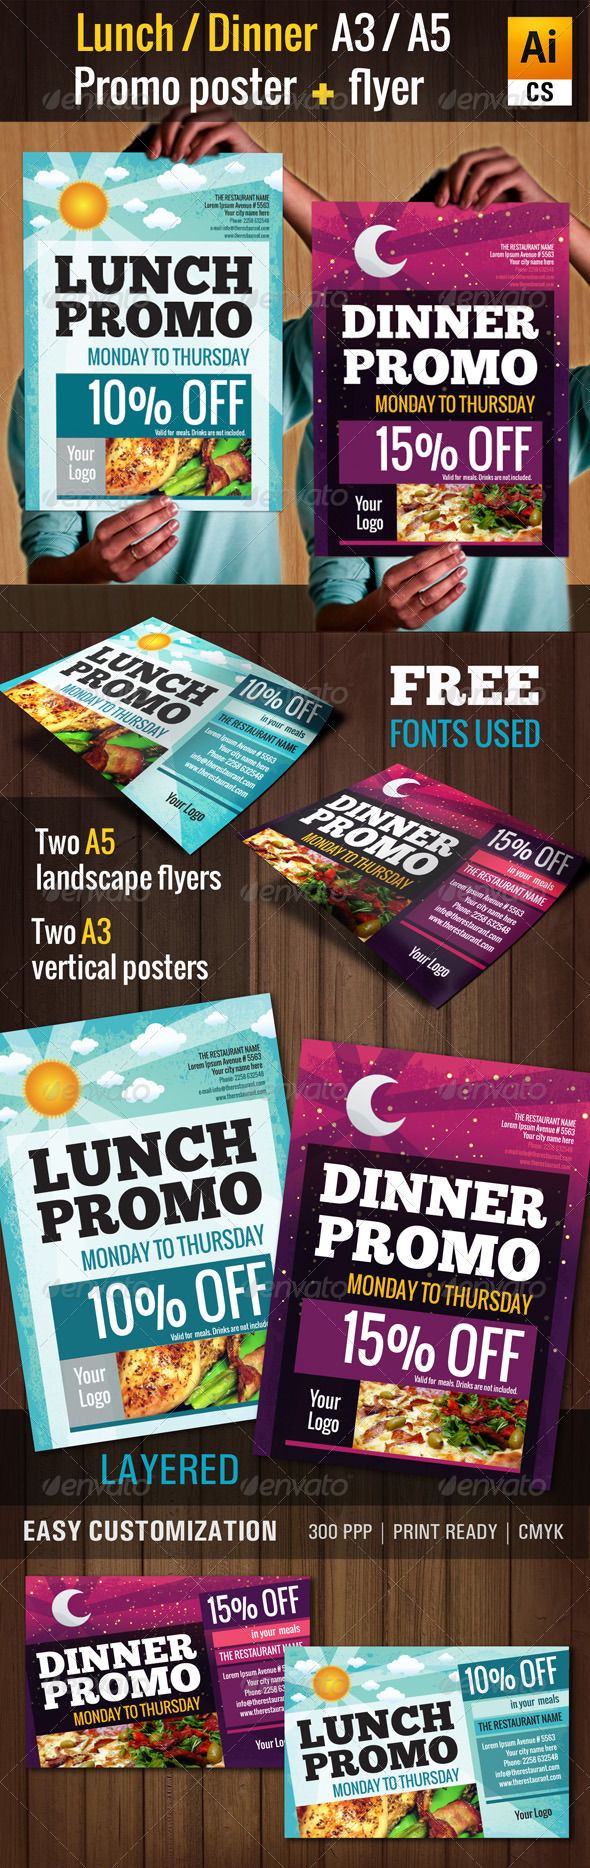 Lunch & Dinner Promo Poster/Flyer (A3, A5) - Restaurant Flyers